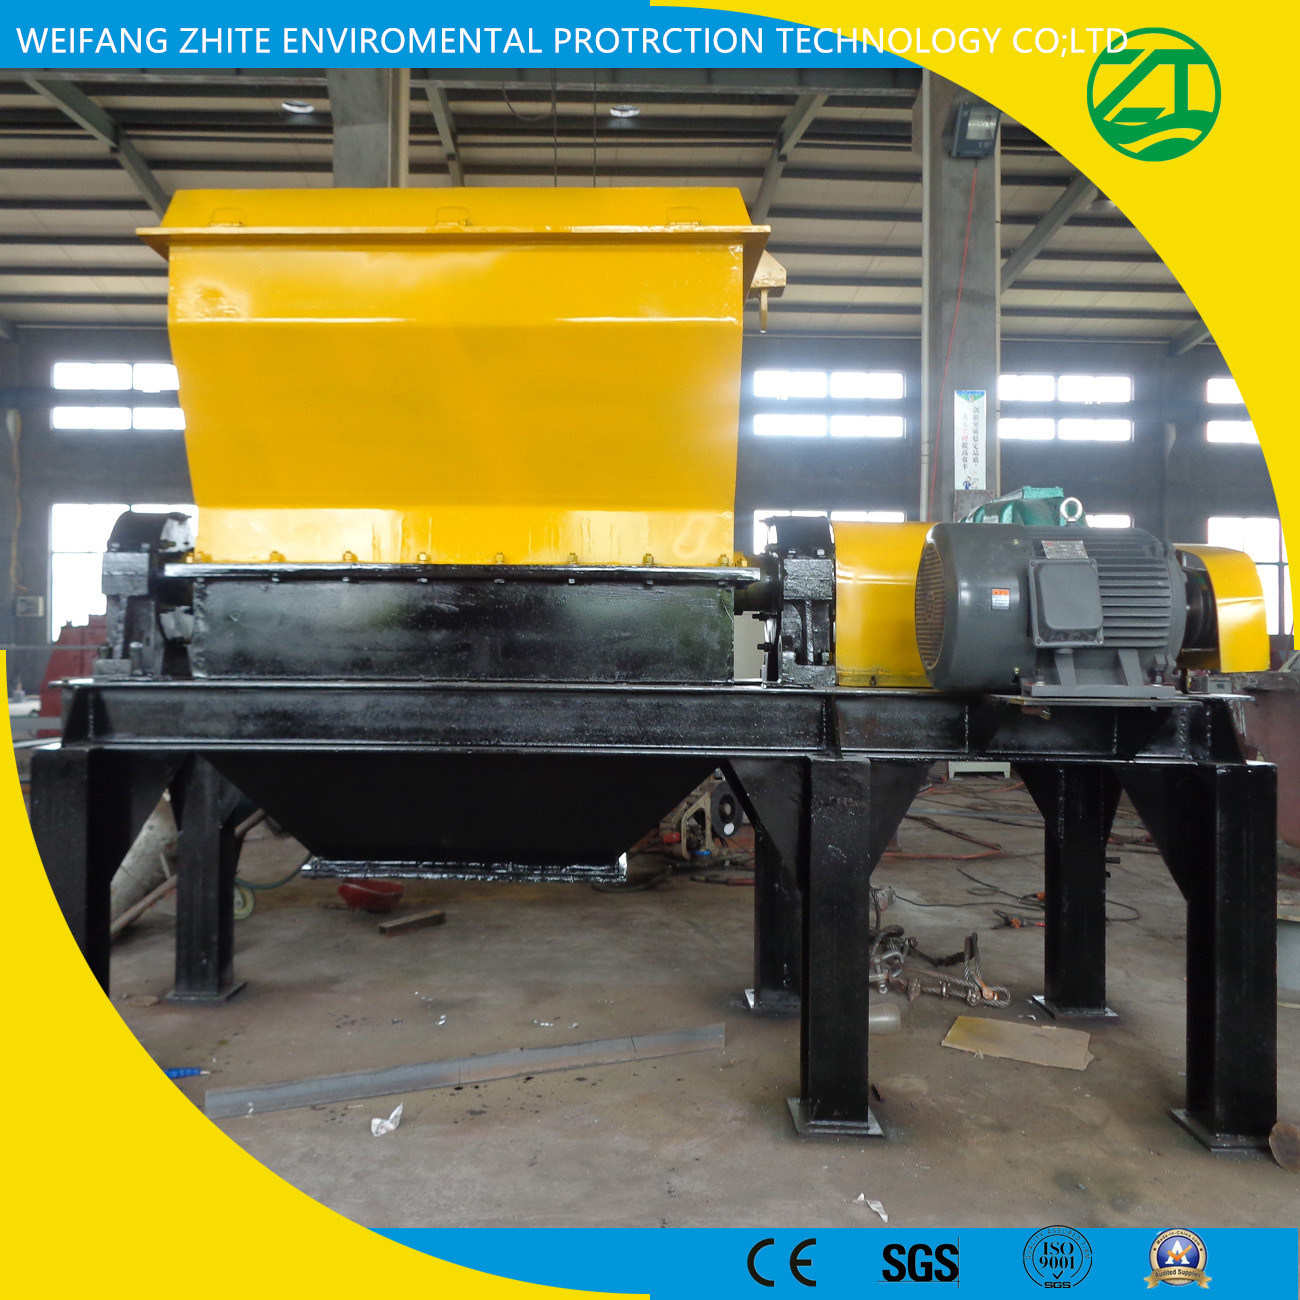 Efficient Two-Stage Shredder for Dead Pig/Cow/Chicken/Duck/Sheep/Horse/Municipal Waste/Foam